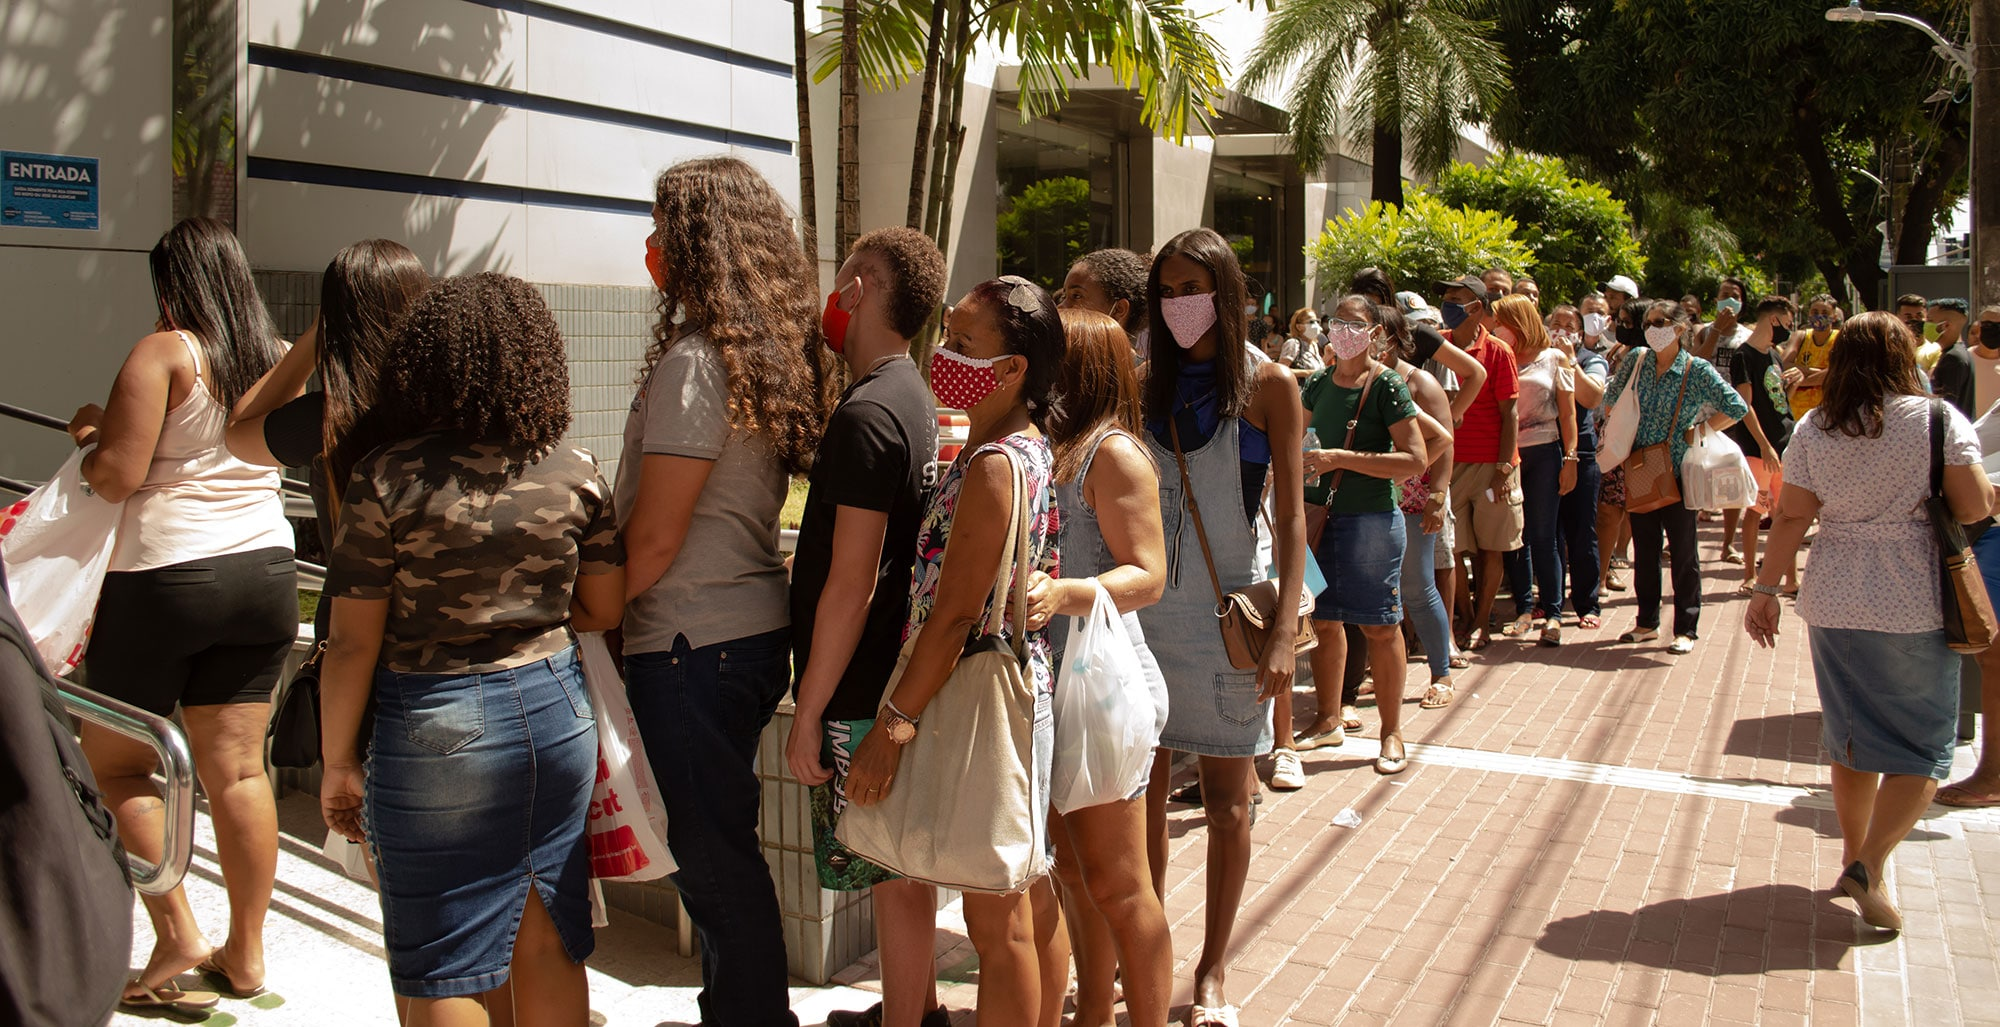 Queues and crowding at the reopening of Boa Vista shopping center in Recife, Pernambuco